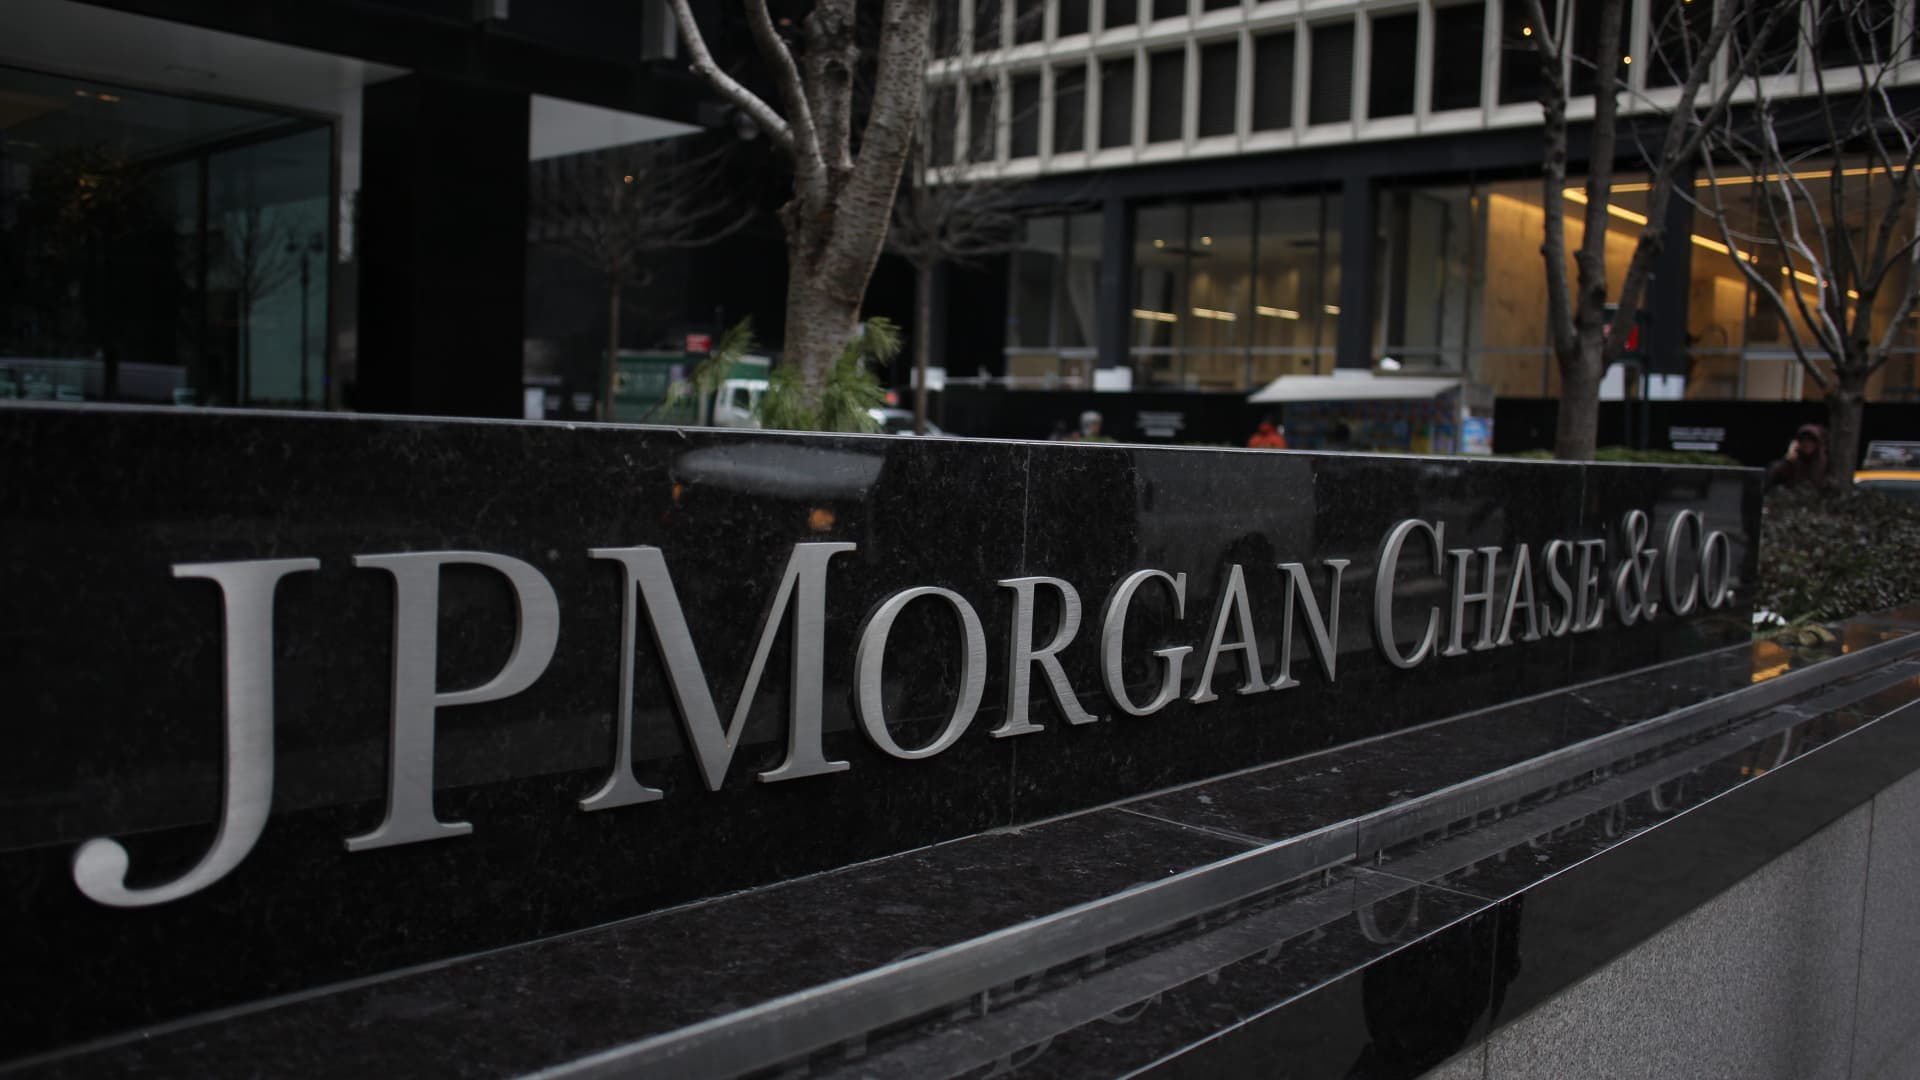 The JP Morgan Chase & Co. headquarters, The JP Morgan Chase Tower in Park Avenue, Midtown, Manhattan, New York.